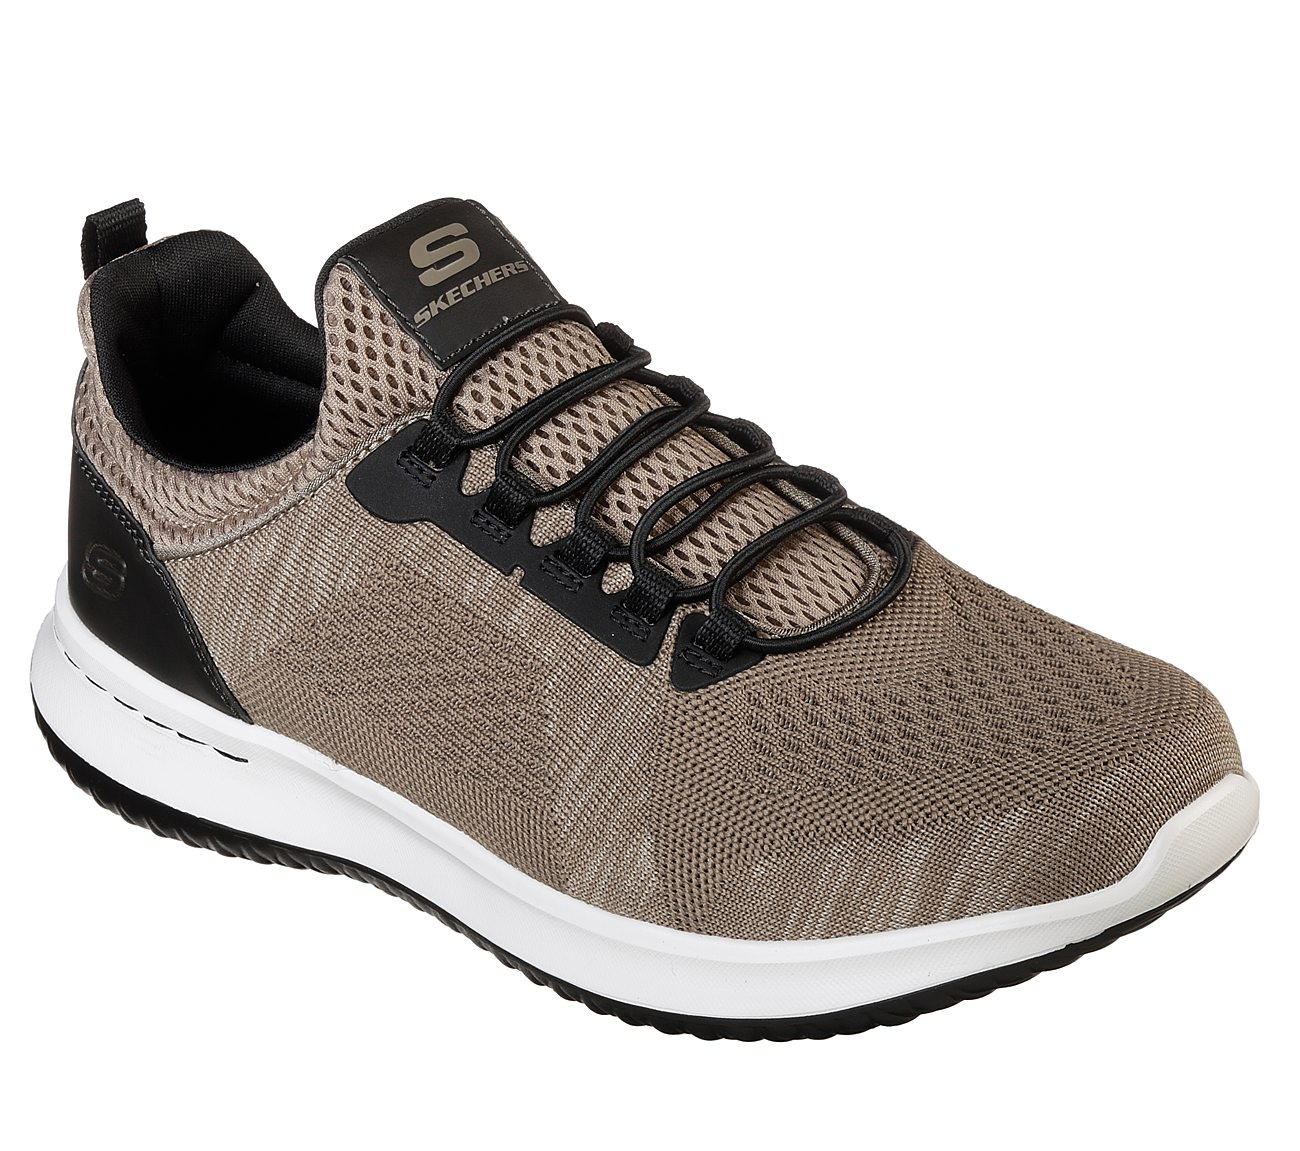 9c2e7f3cd42 Buy SKECHERS Delson - Brewton USA Casuals Shoes only $75.00